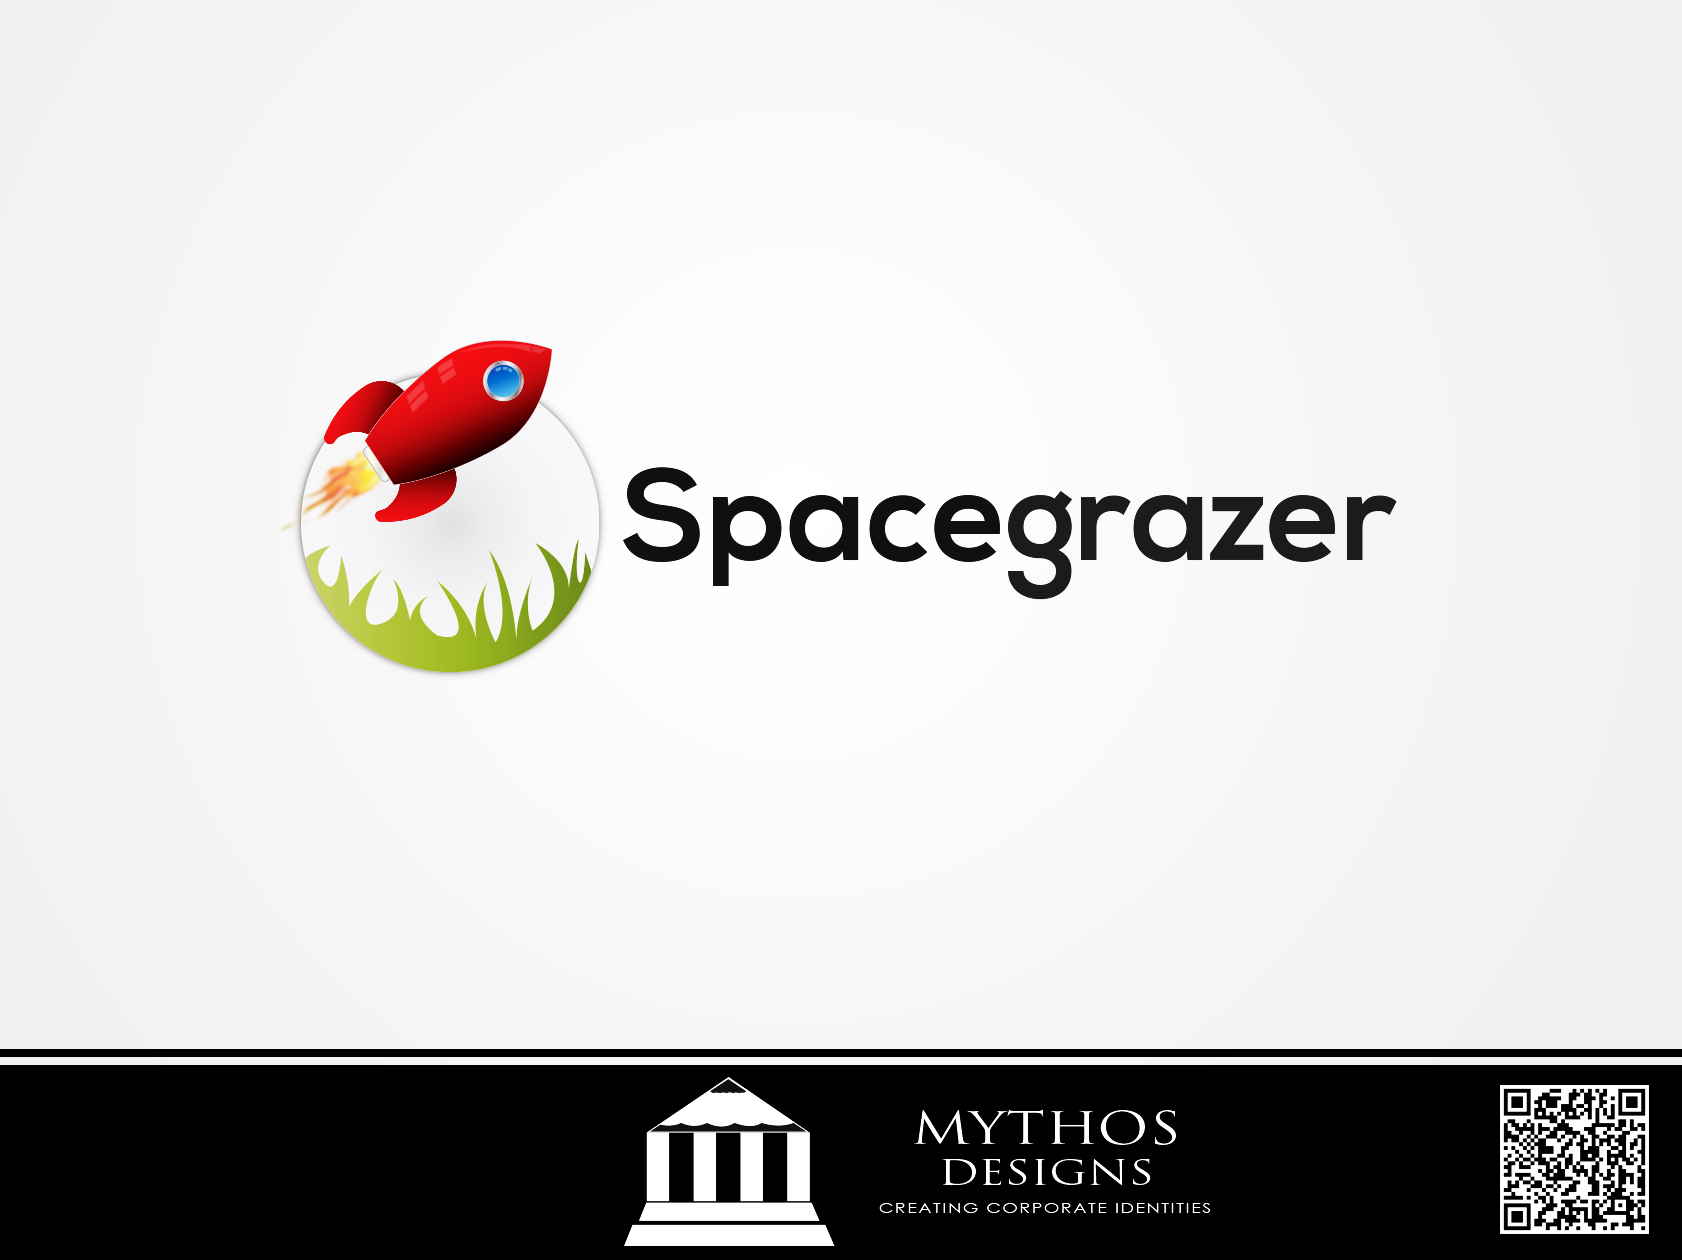 Logo Design by Mythos Designs - Entry No. 104 in the Logo Design Contest Fun Logo Design for Spacegrazer.